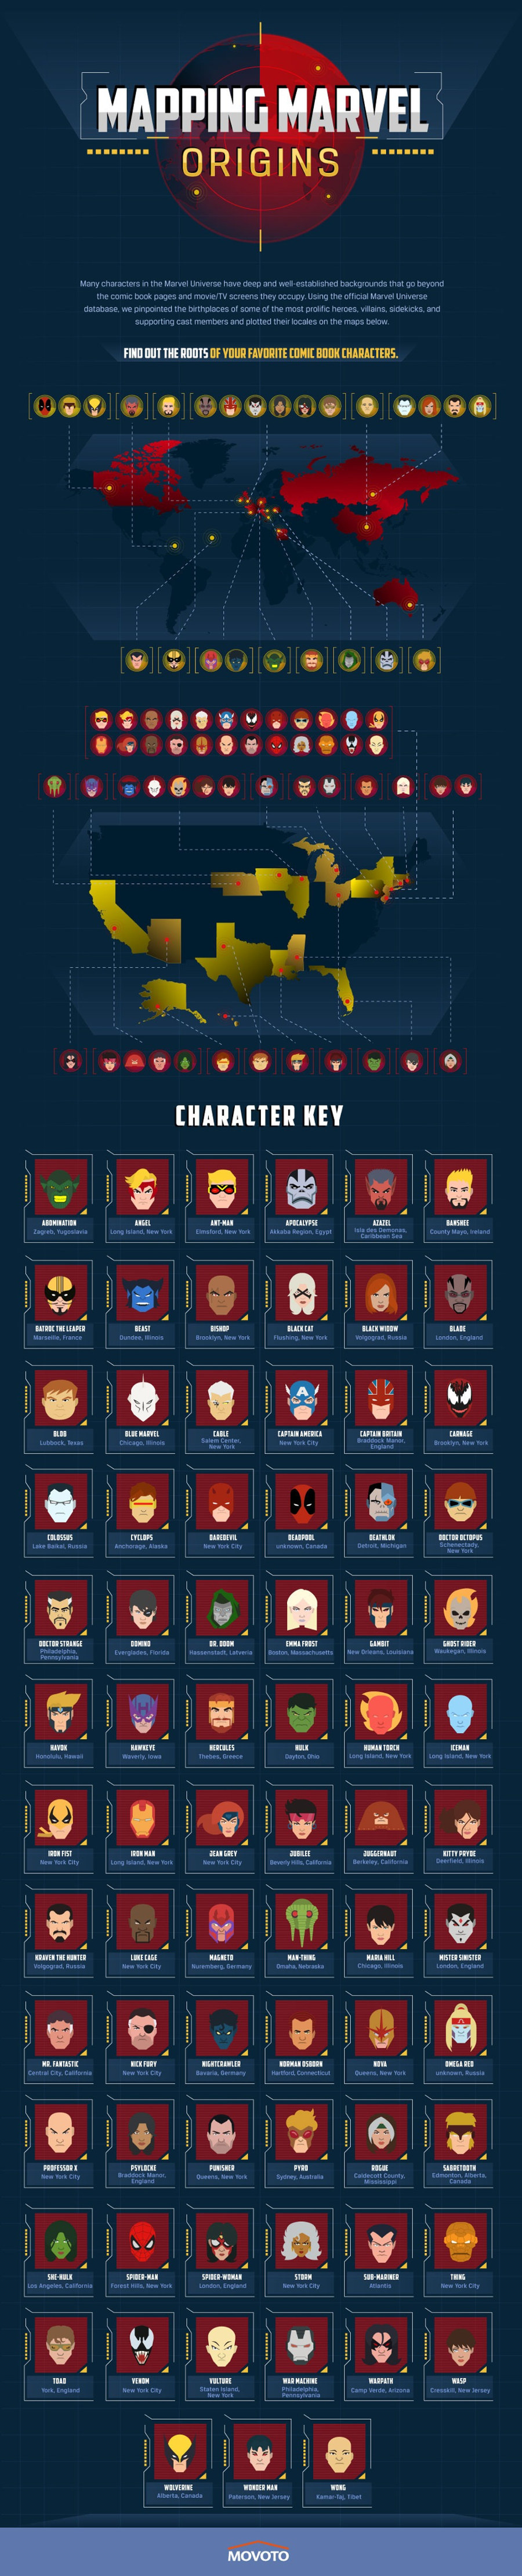 marvel-character-hometowns-large.jpg